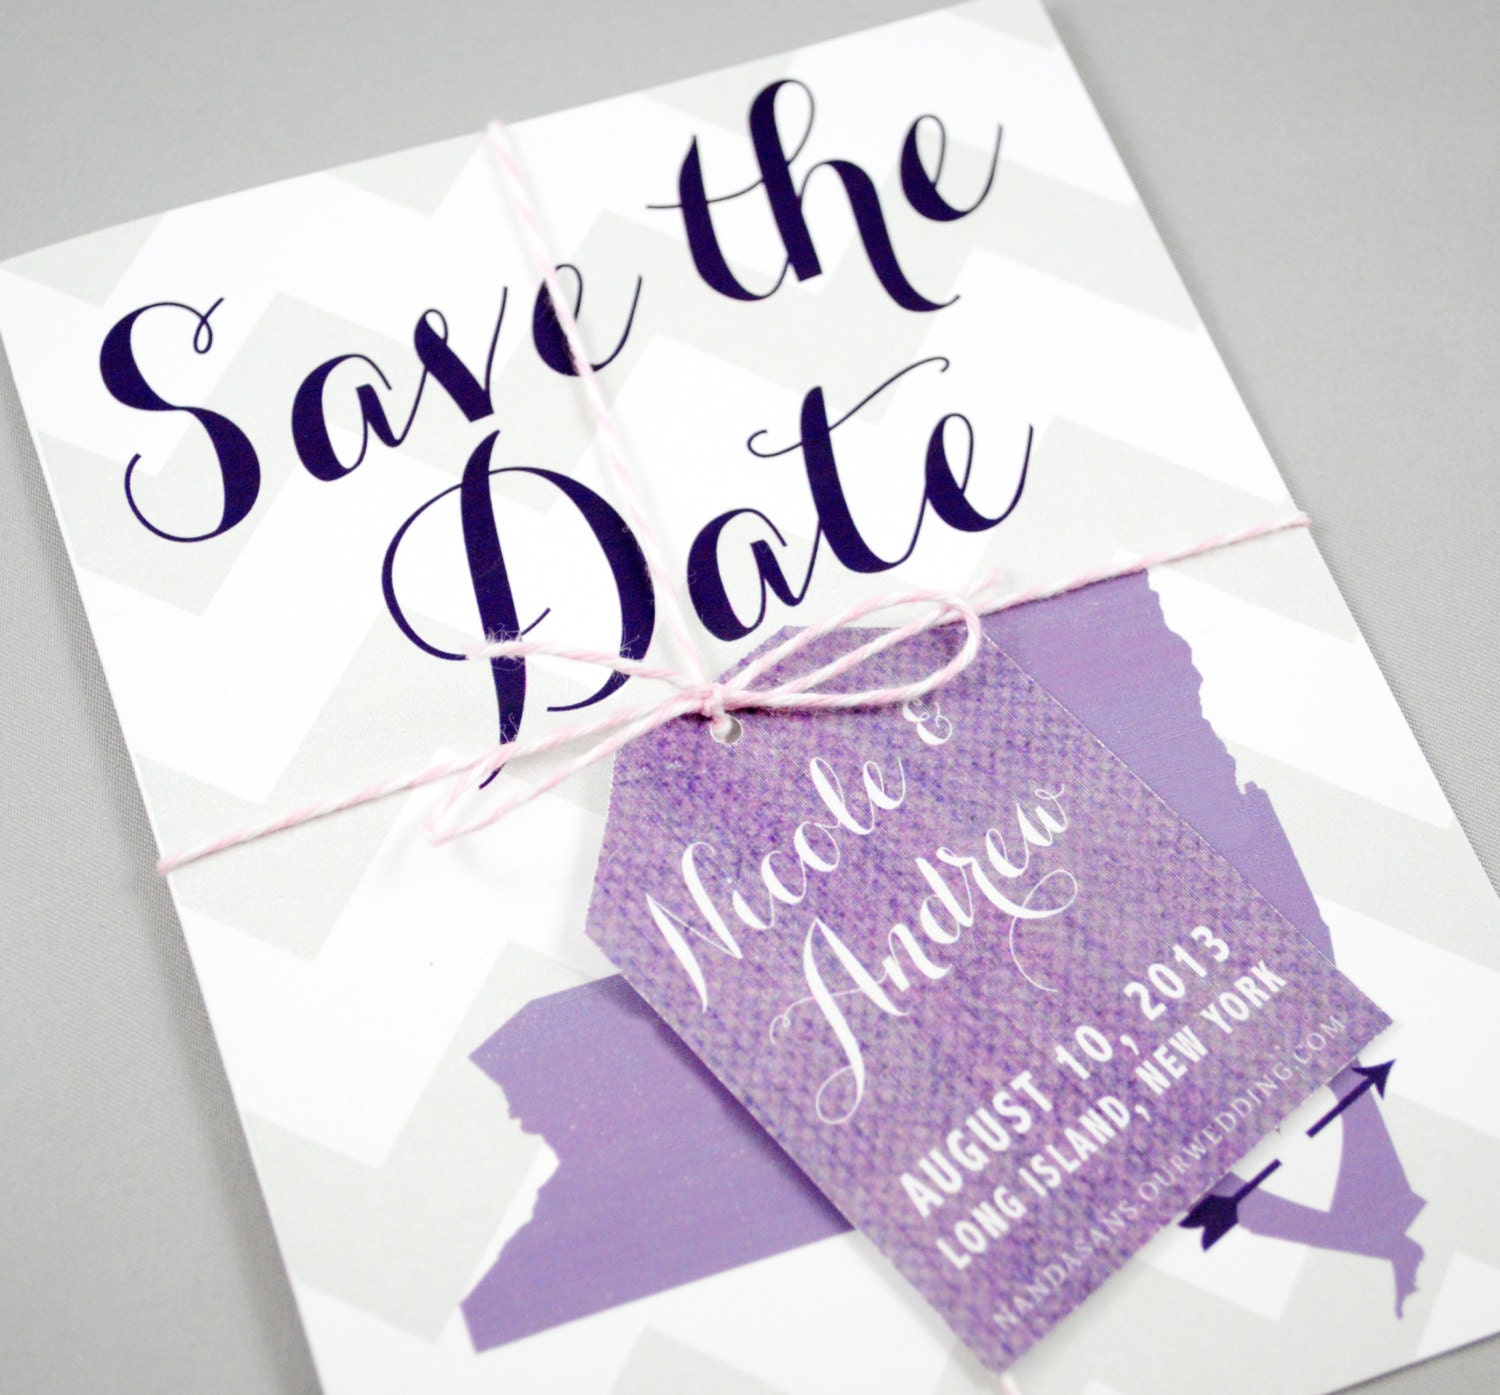 When To Send Out Wedding Invitations For Destination Wedding: Save The Date Chevron Save The Date Invitation Destination